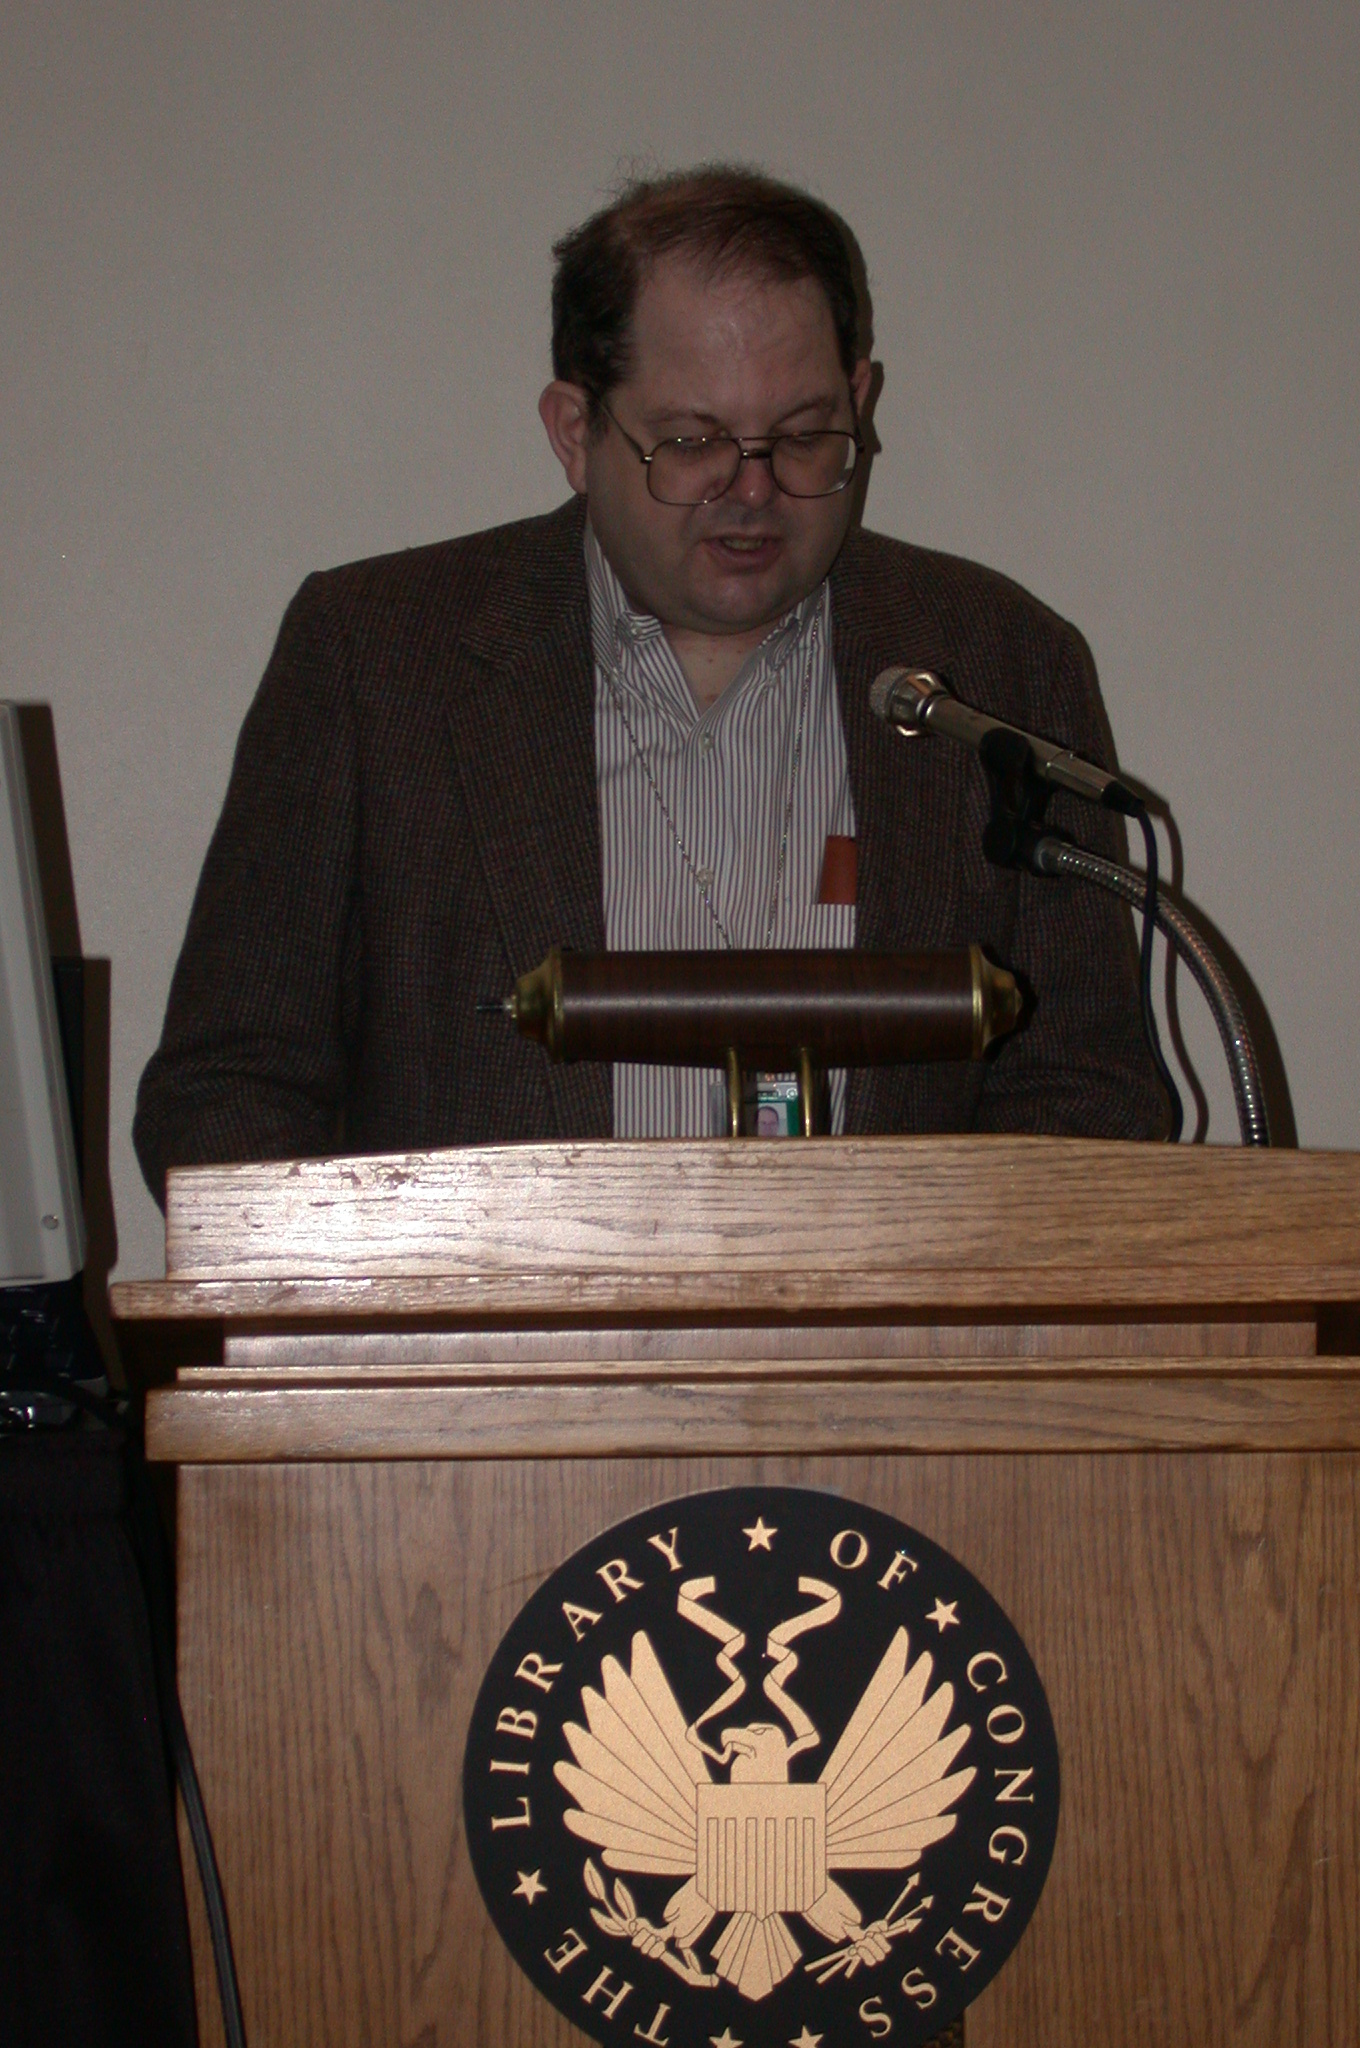 DSCN0219.jpg - Brian opens the program for our final day.